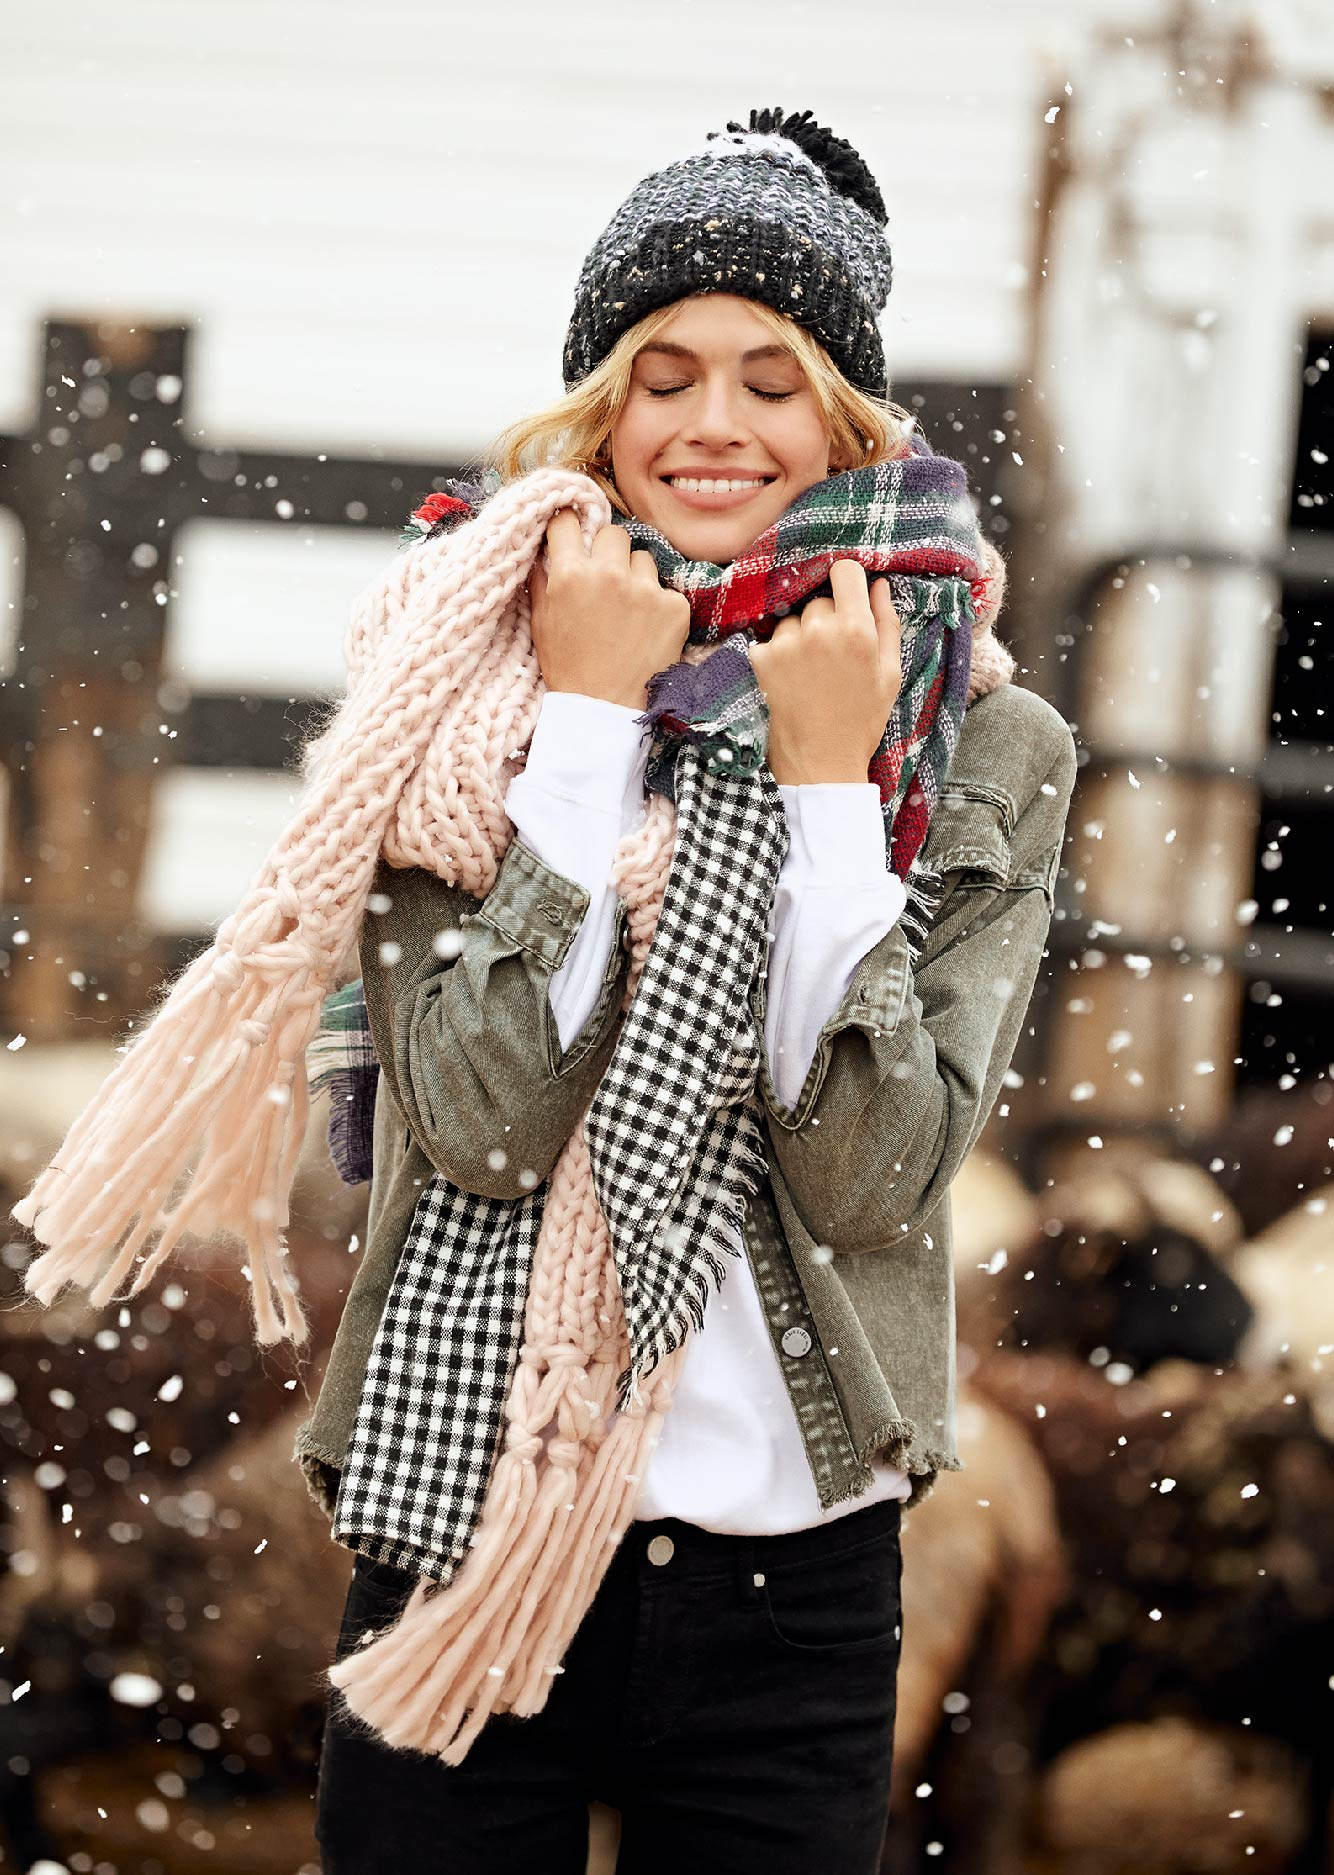 Women holding scarves with a beanie. Scarves are plaid, pink, and buffalo check.